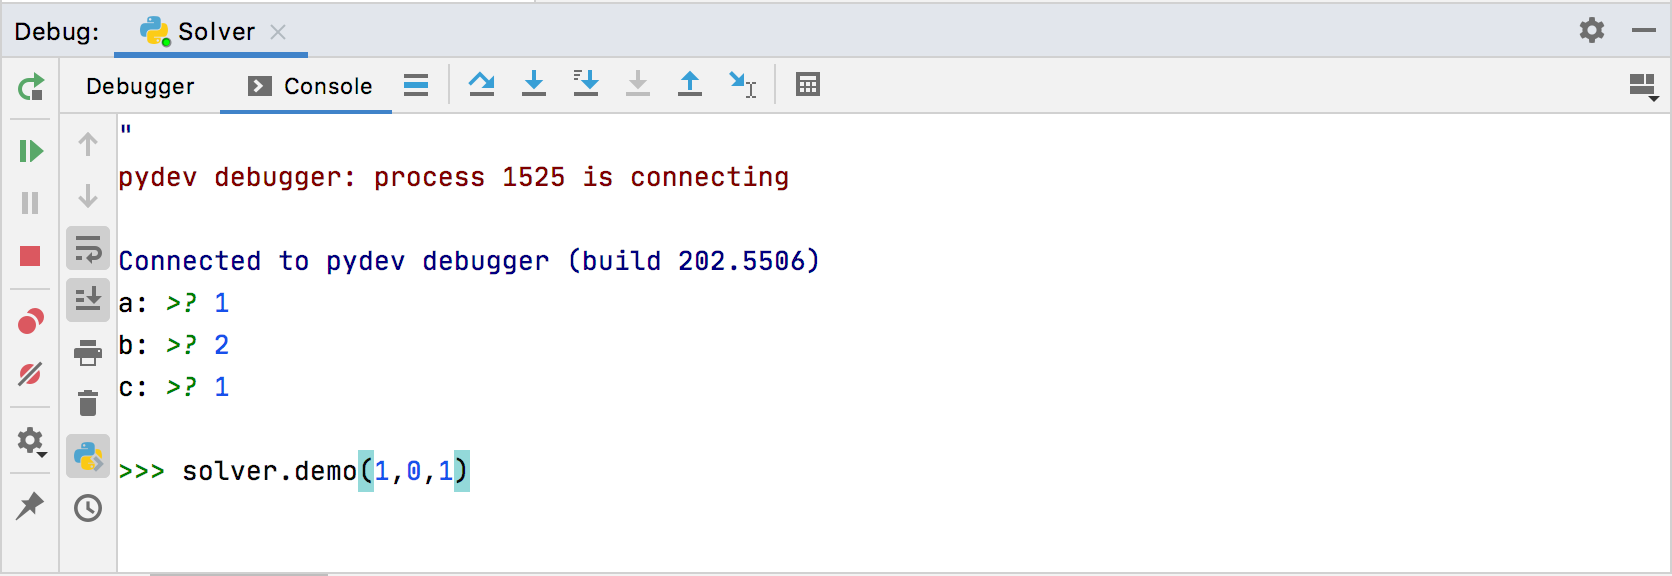 Using a Python prompt in the debug console